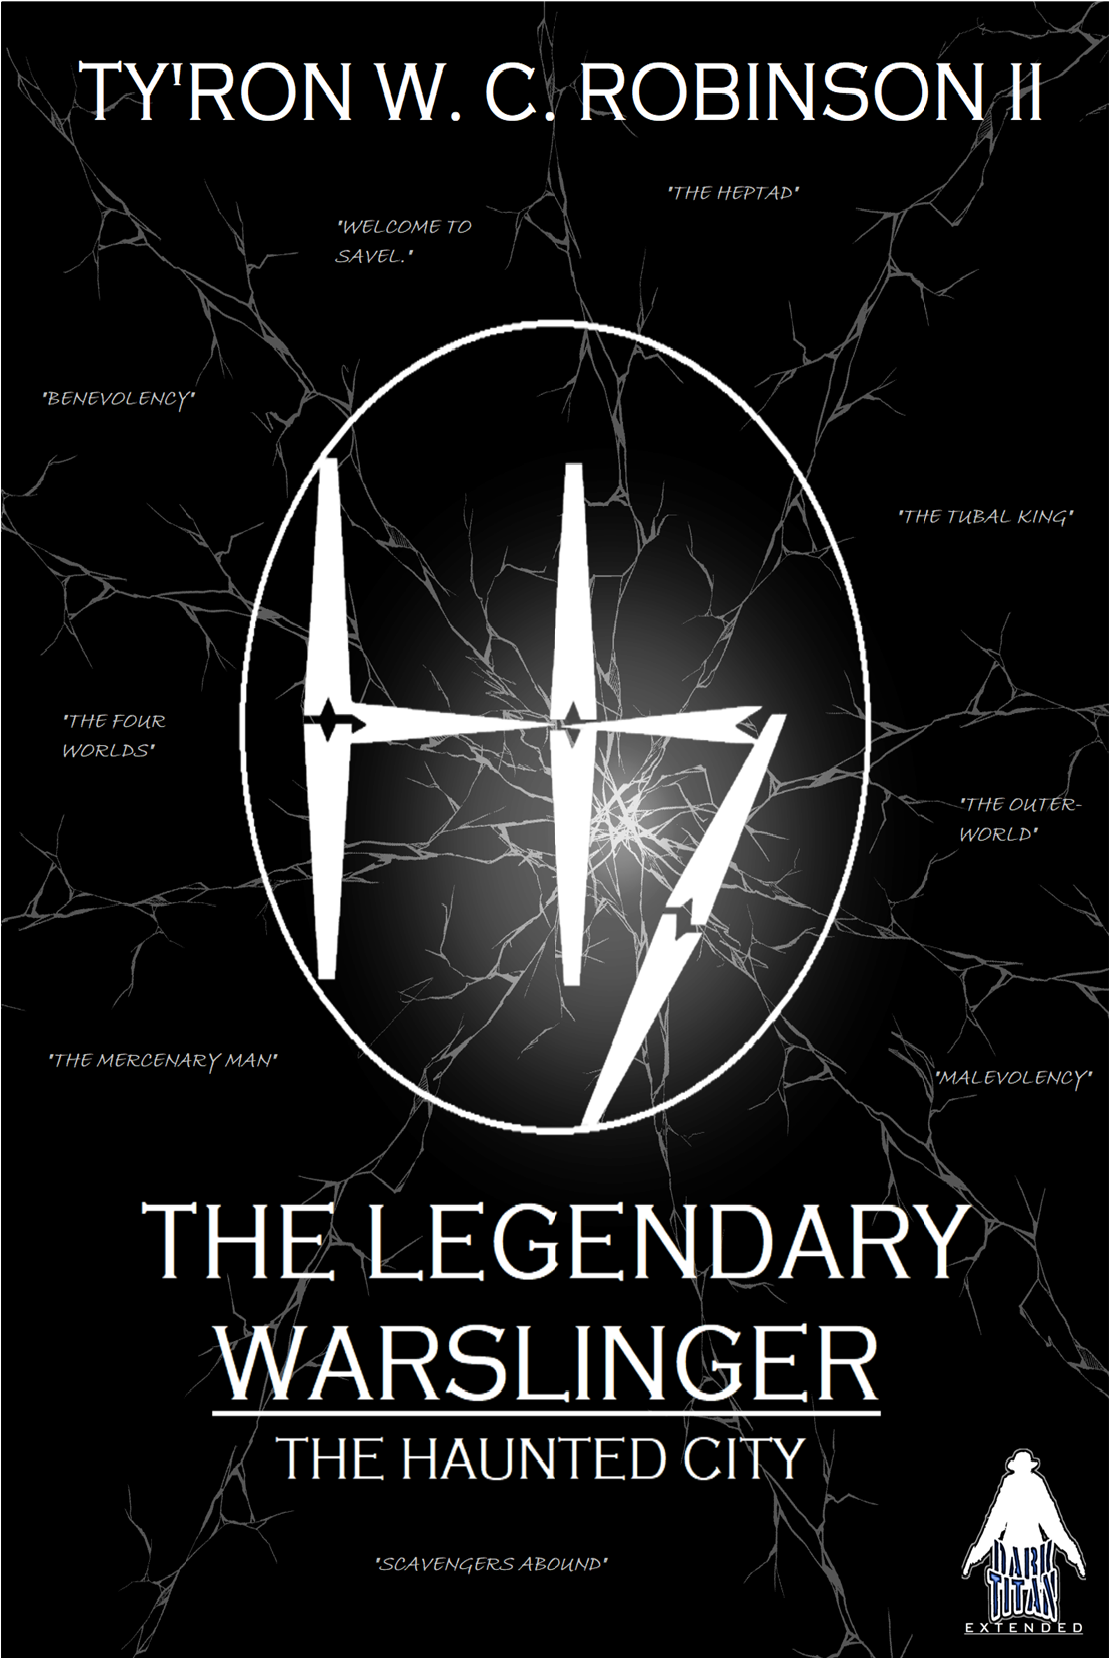 The Legendary Warslinger - Paperback Front Cover.png